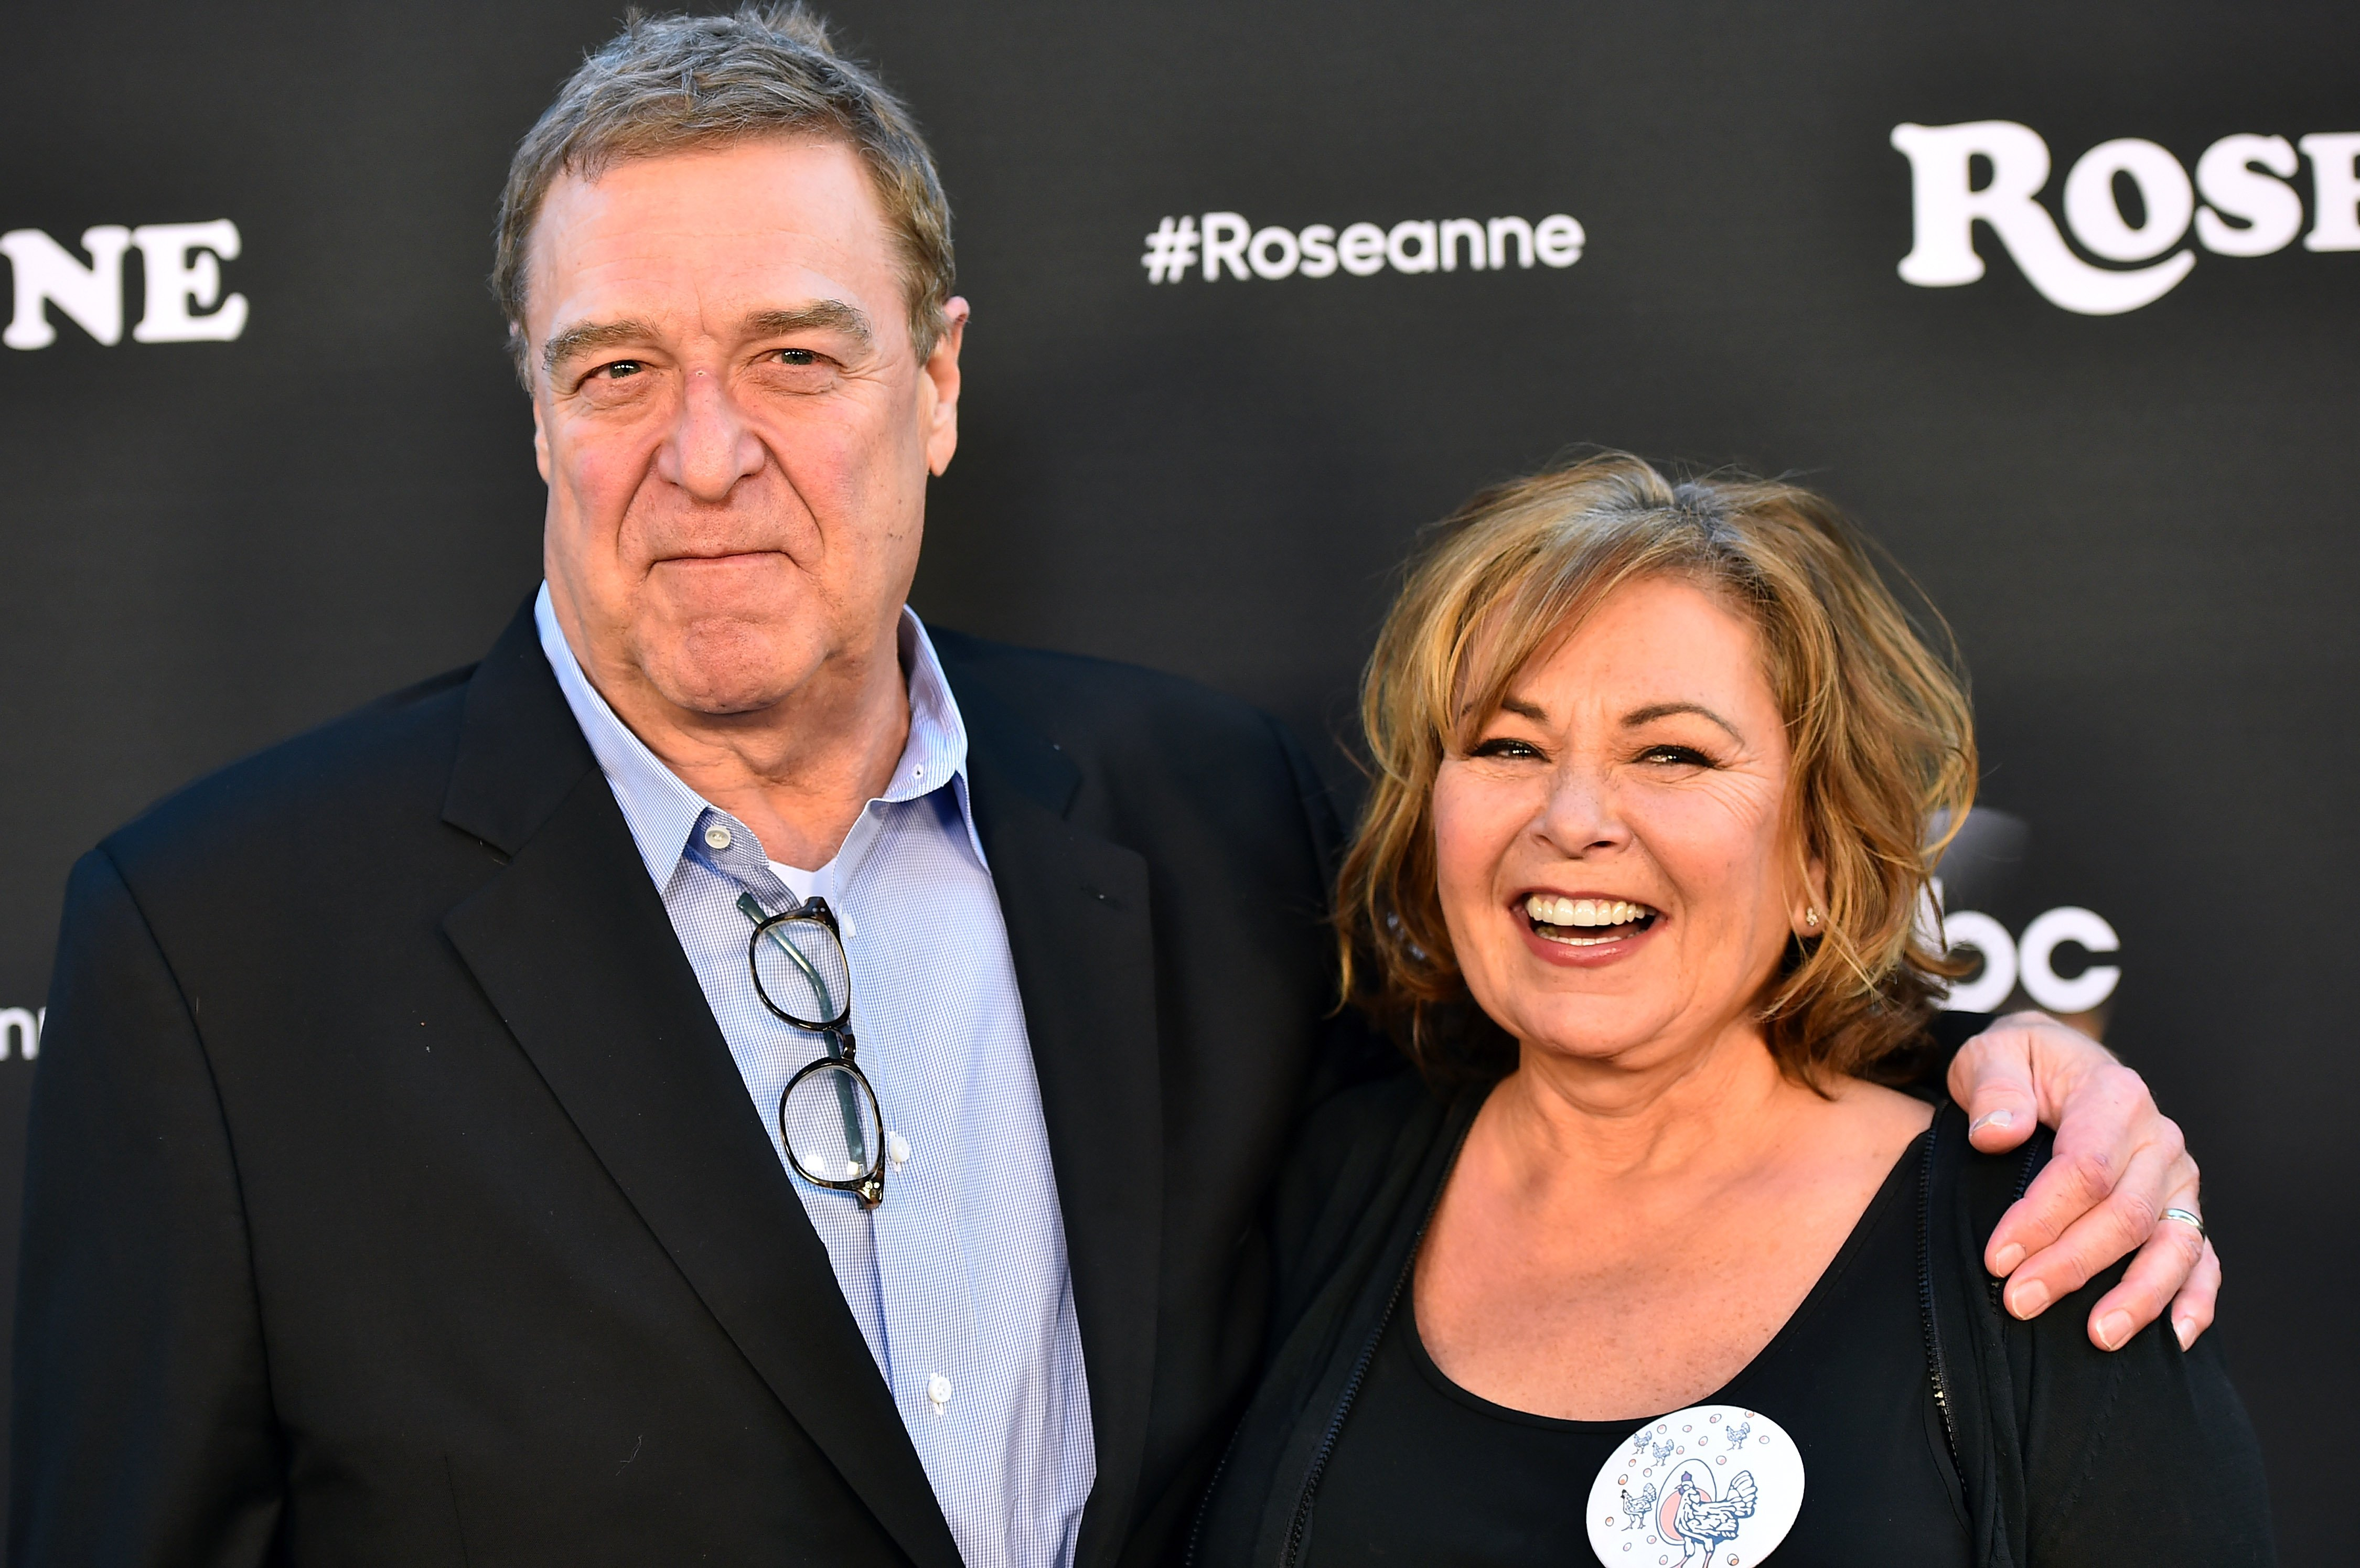 """John Goodman and Roseanne Barr attend the premiere of ABC's """"Roseanne"""" at Walt Disney Studio Lot on March 23, 2018 